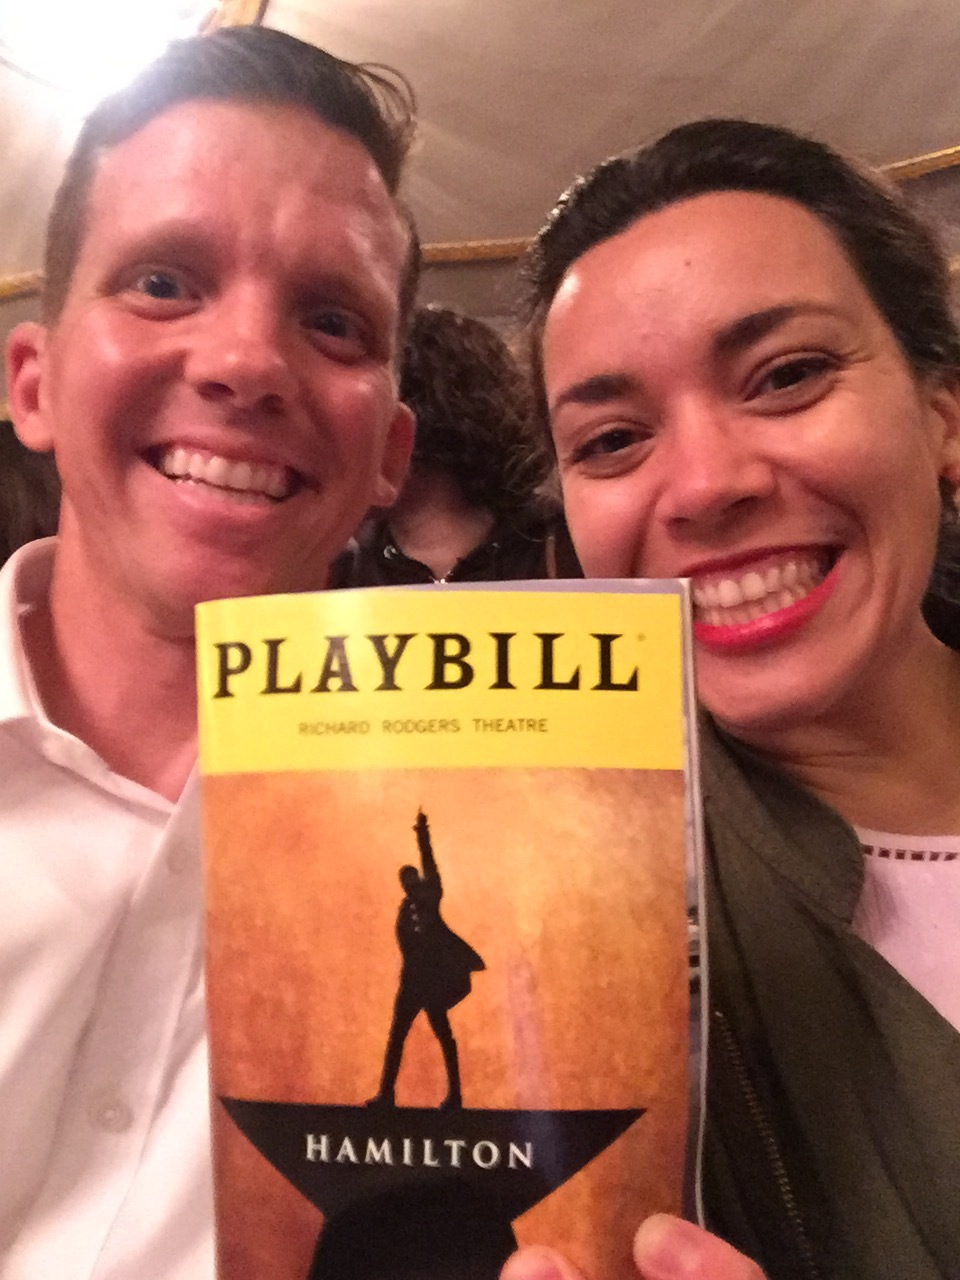 A few days later it was such a gift to celebrate our anniversary by getting to see Hamilton on Broadway was unforgettable!